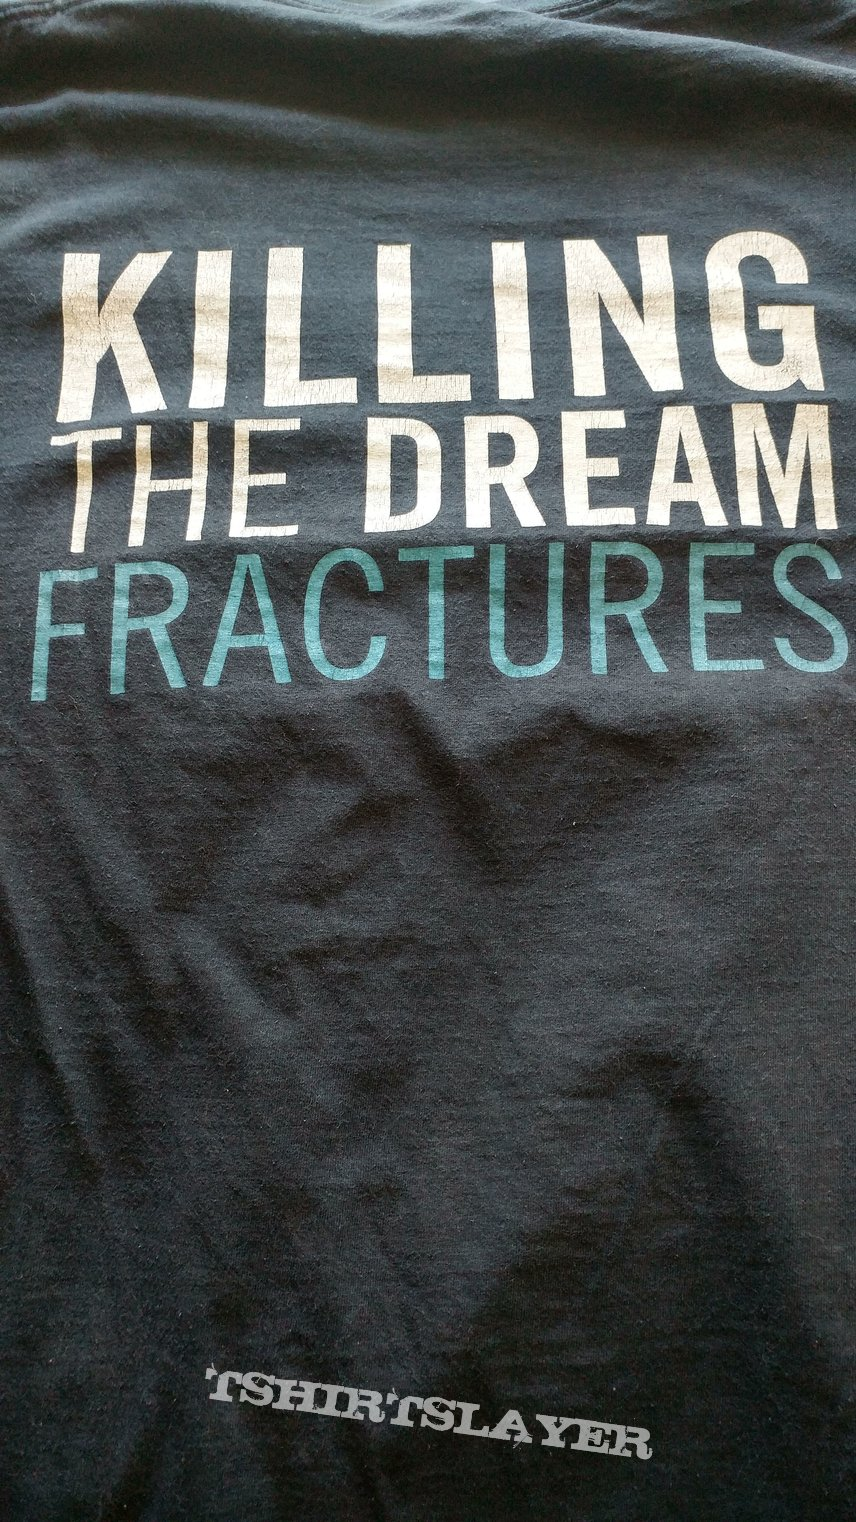 Killing the Dream Fractures shirt